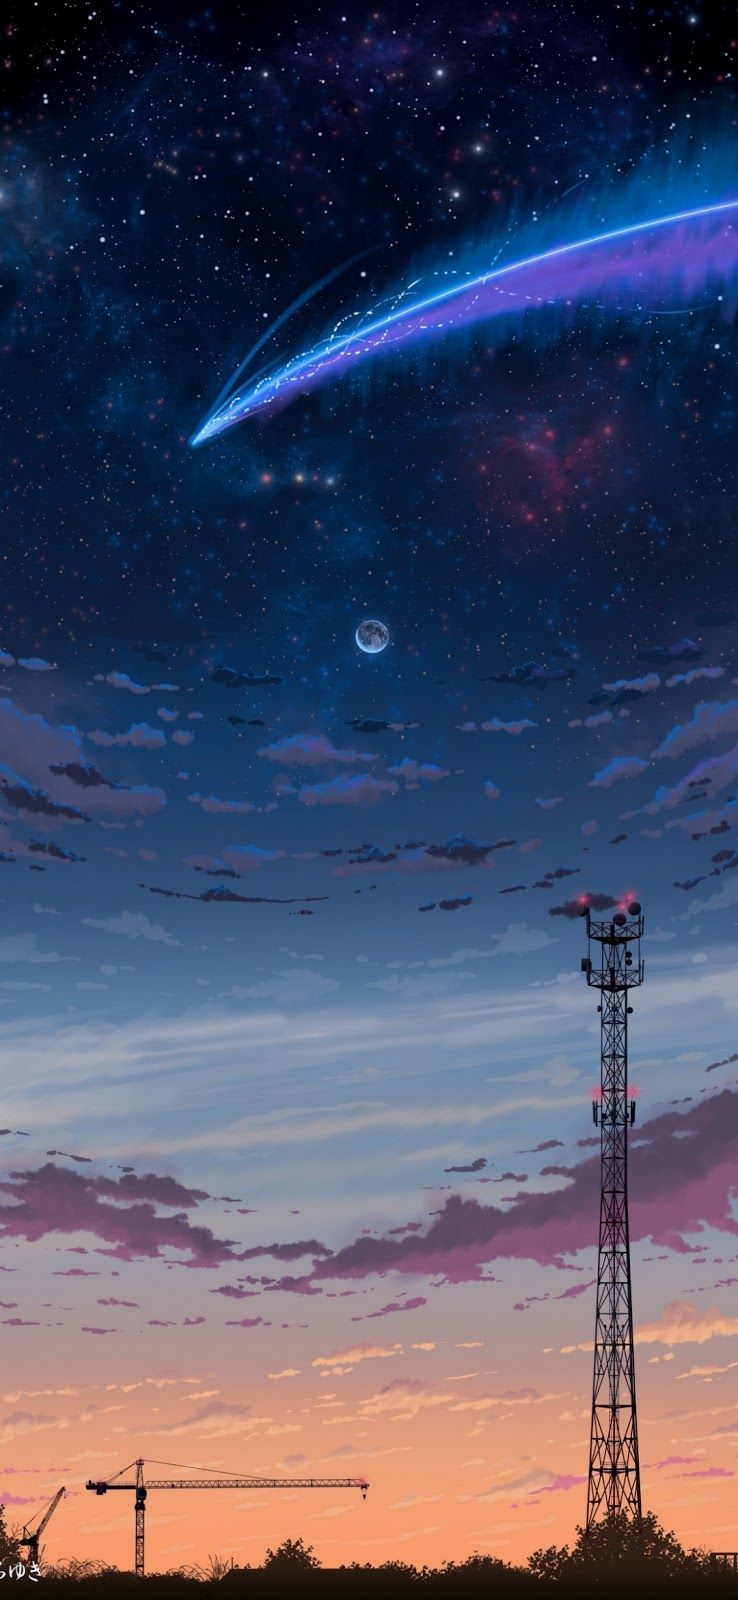 Starfall in the night in 2020 Backgrounds phone